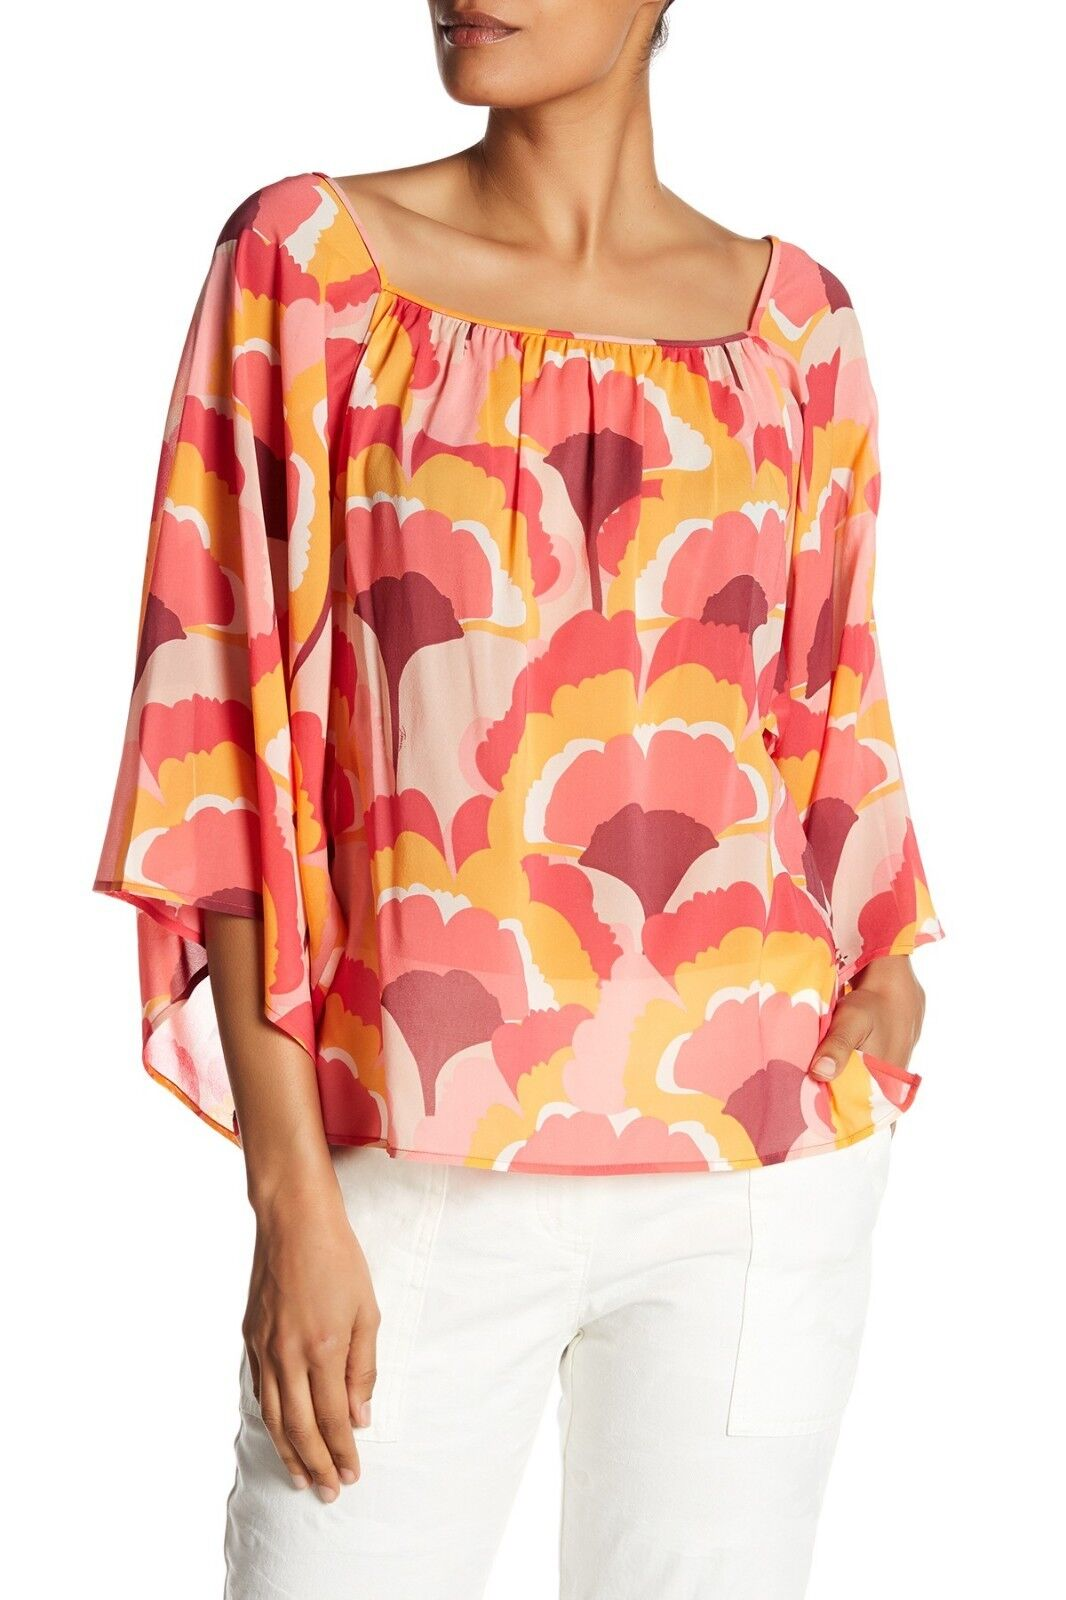 NWT- Trina Turk Ginkoba Printed Silk 3 4 Sleeve Blouse Top, Multi - Größe Medium